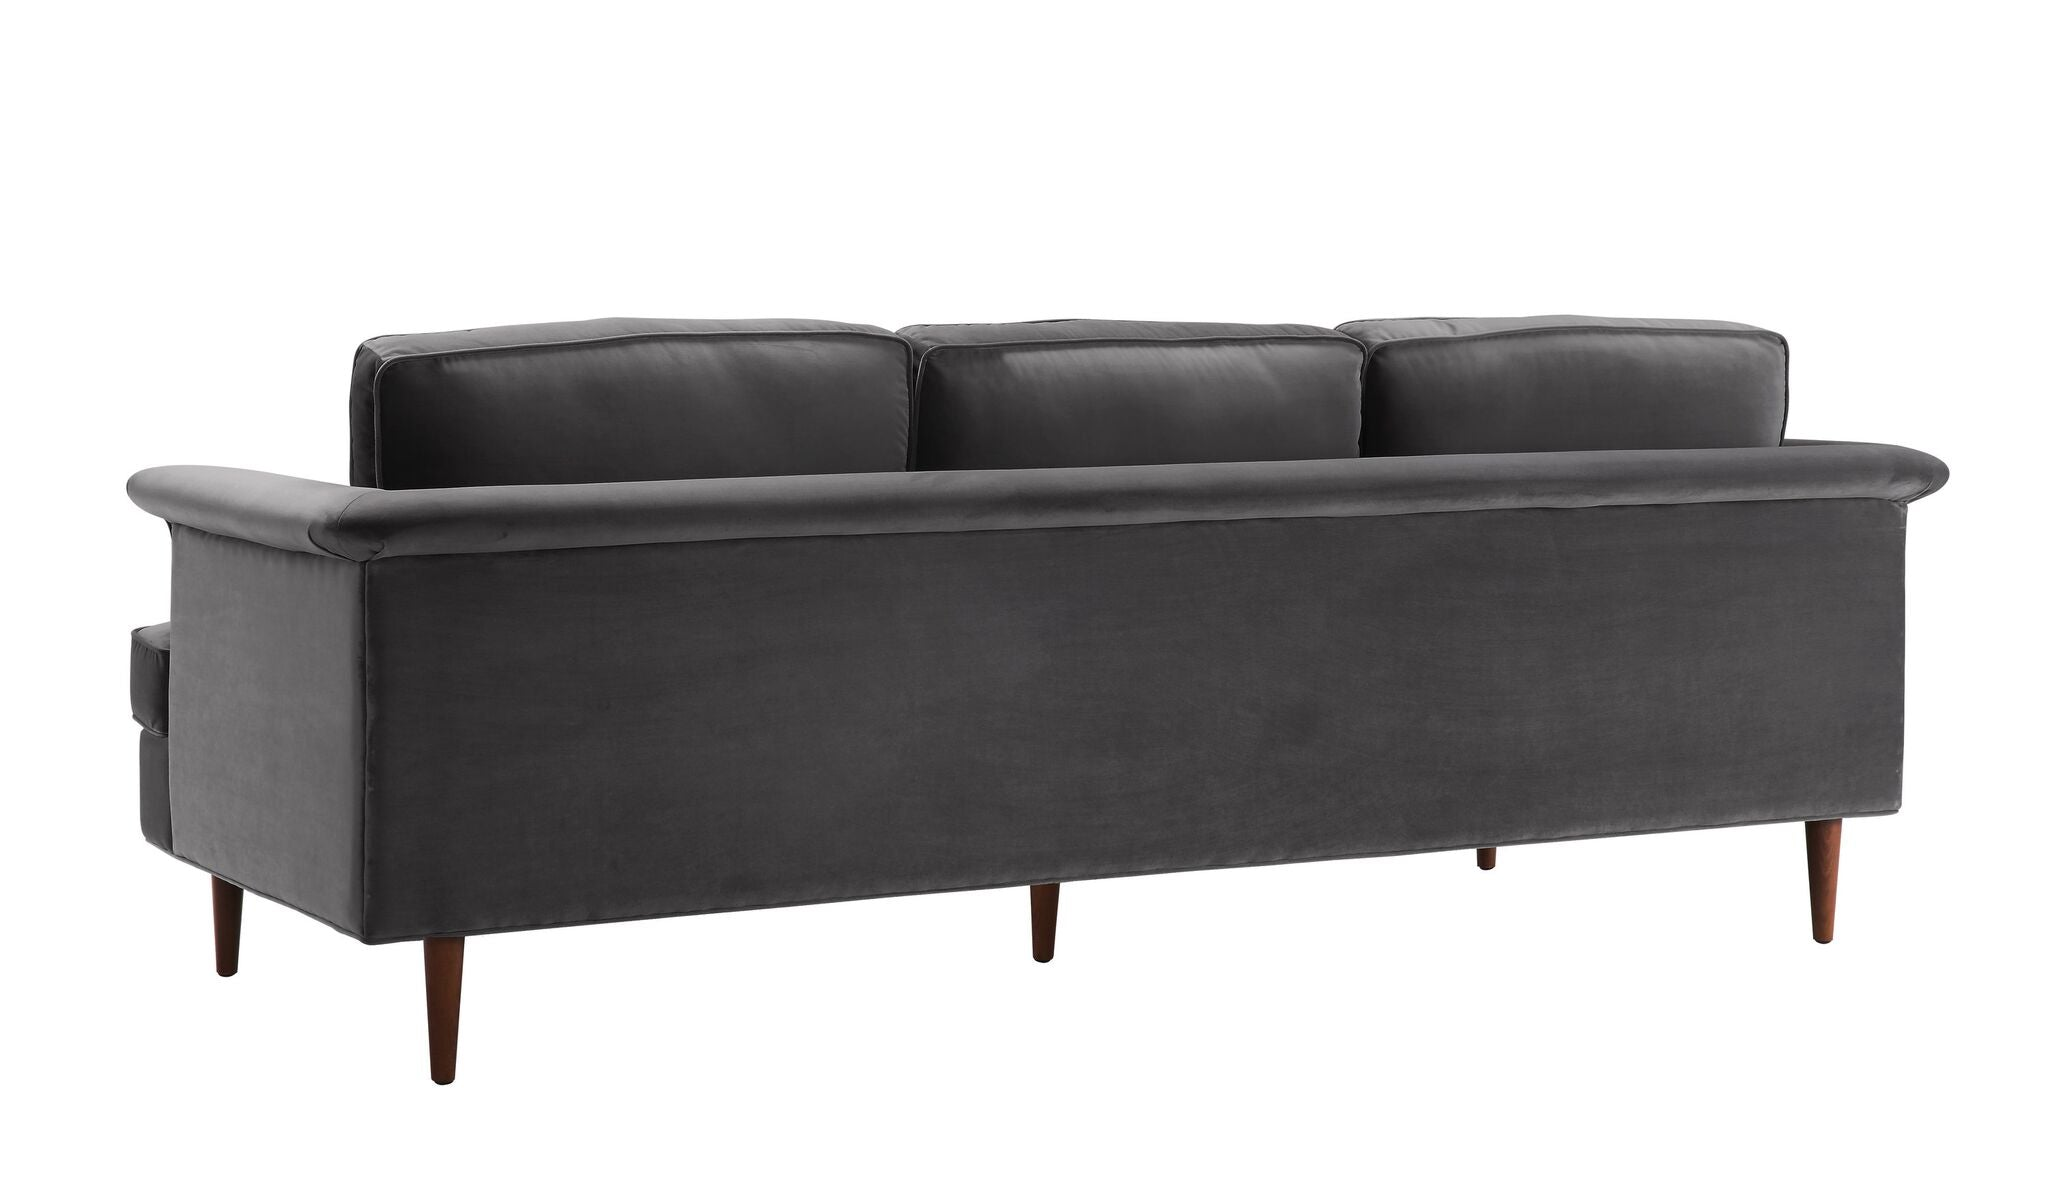 Porter Grey Sofa - State.Mint Home & Garden